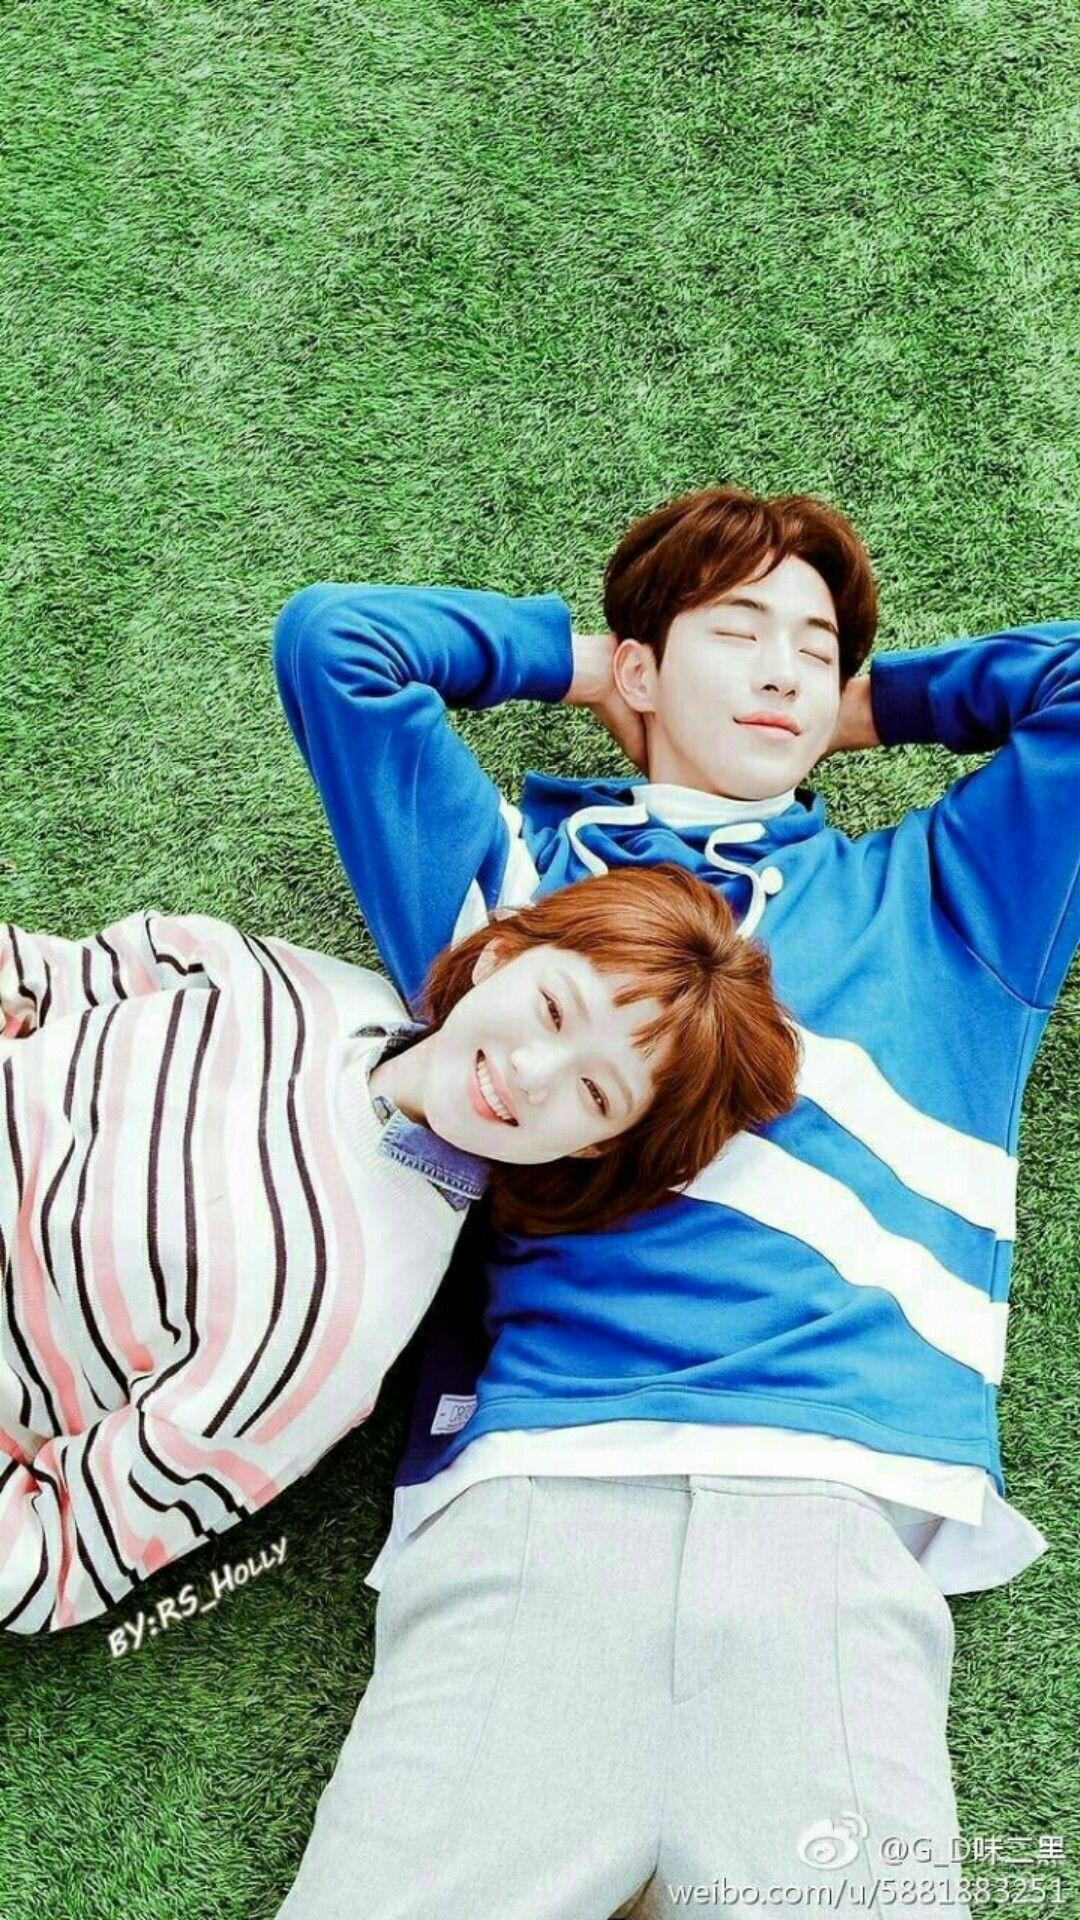 Nam Joo Hyuk Lee Sung Kyung High Quality Wallpapers~ Follow